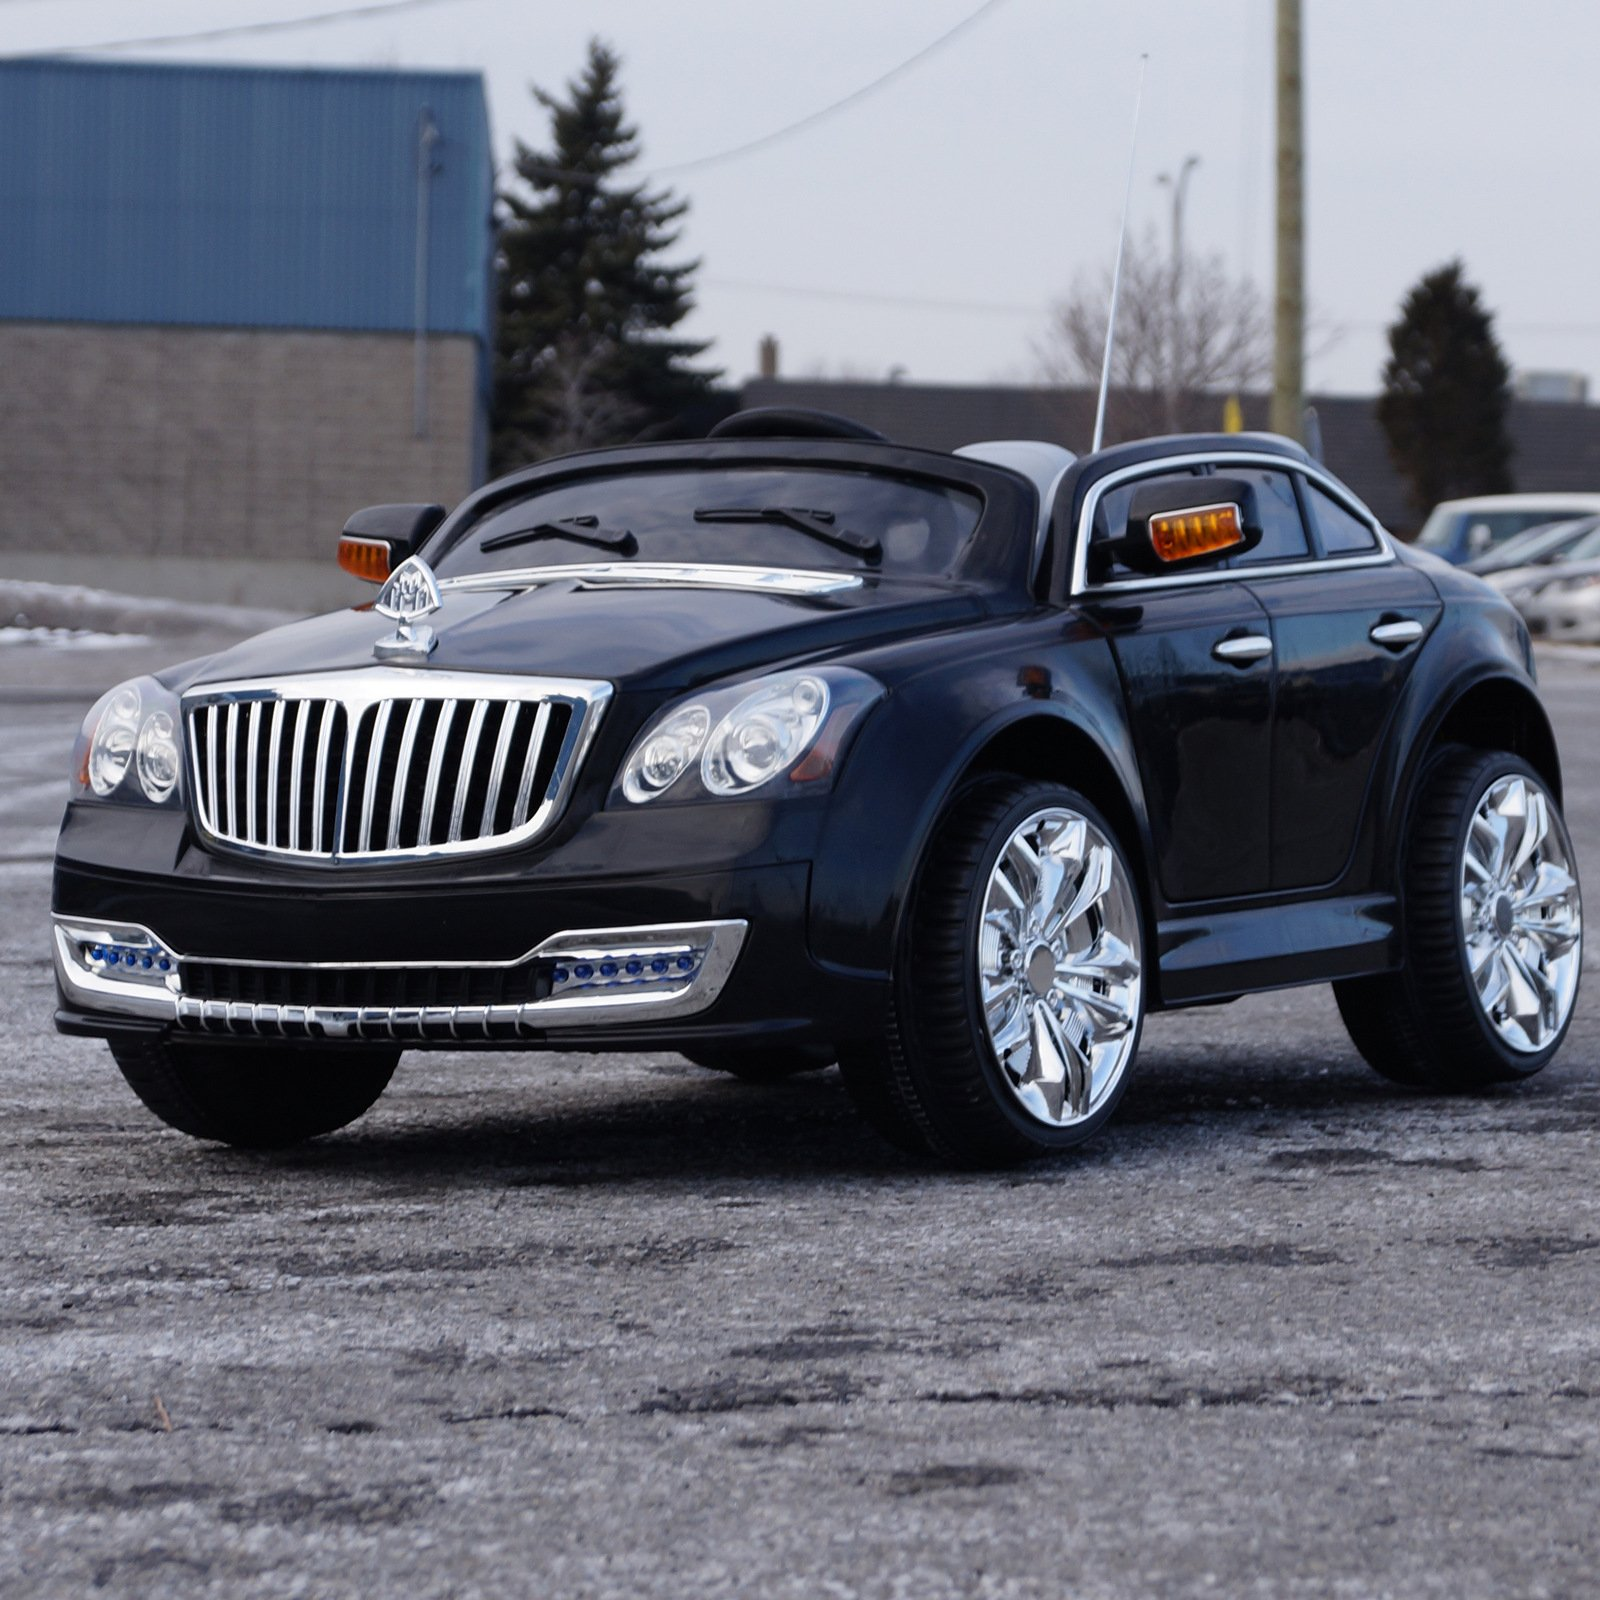 Ride on car MAYBACH style. Two electric motors. MP3. 1 Battery. Electric car with remote control. Maximum speed of 3-5 km/h. Seat belt. Battery powered 12V total. For kids from 2 to 7 years.